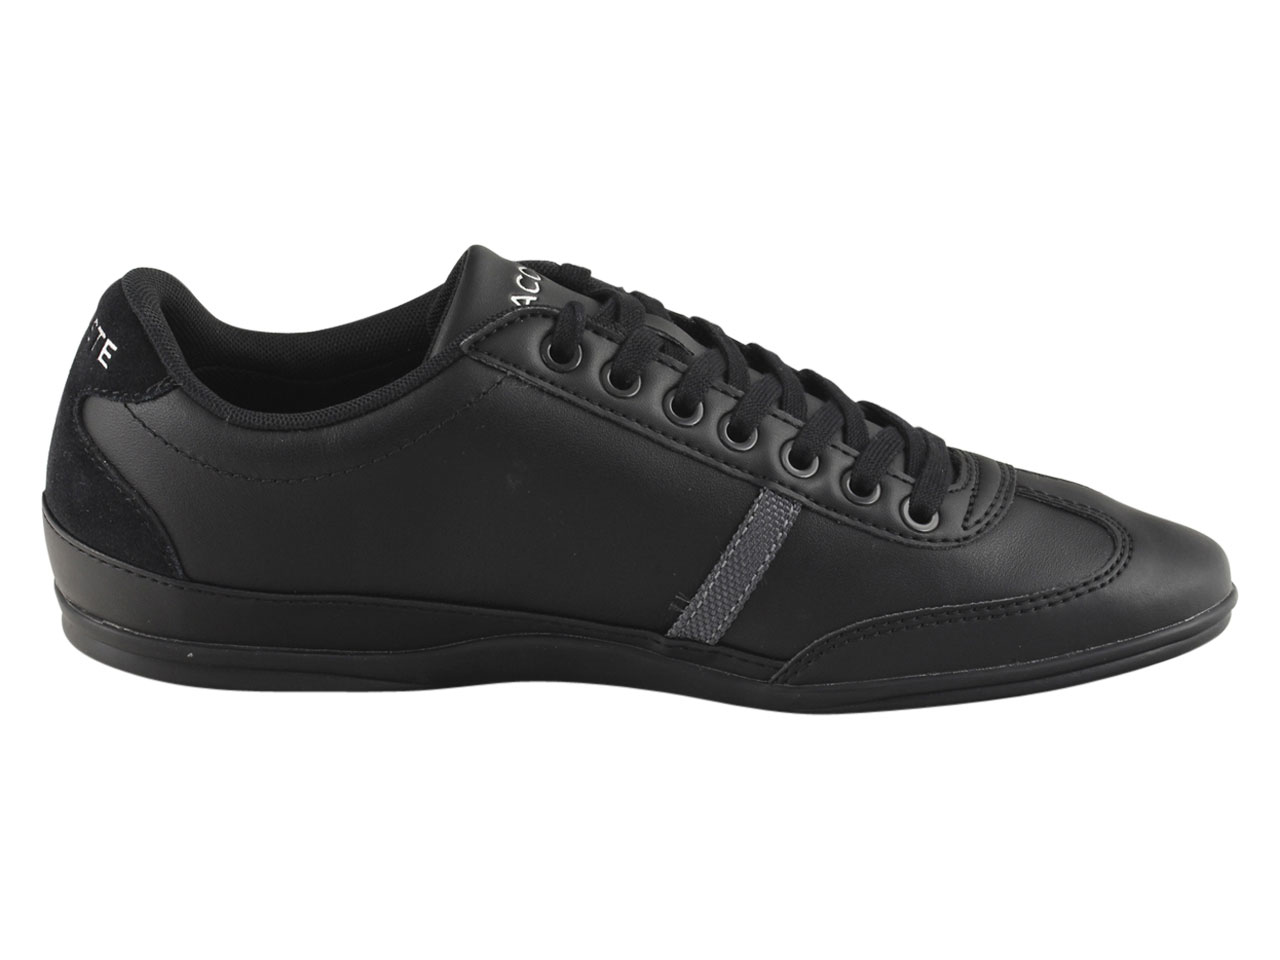 Lacoste-Men-039-s-Misano-Sport-118-Sneakers-Shoes thumbnail 12